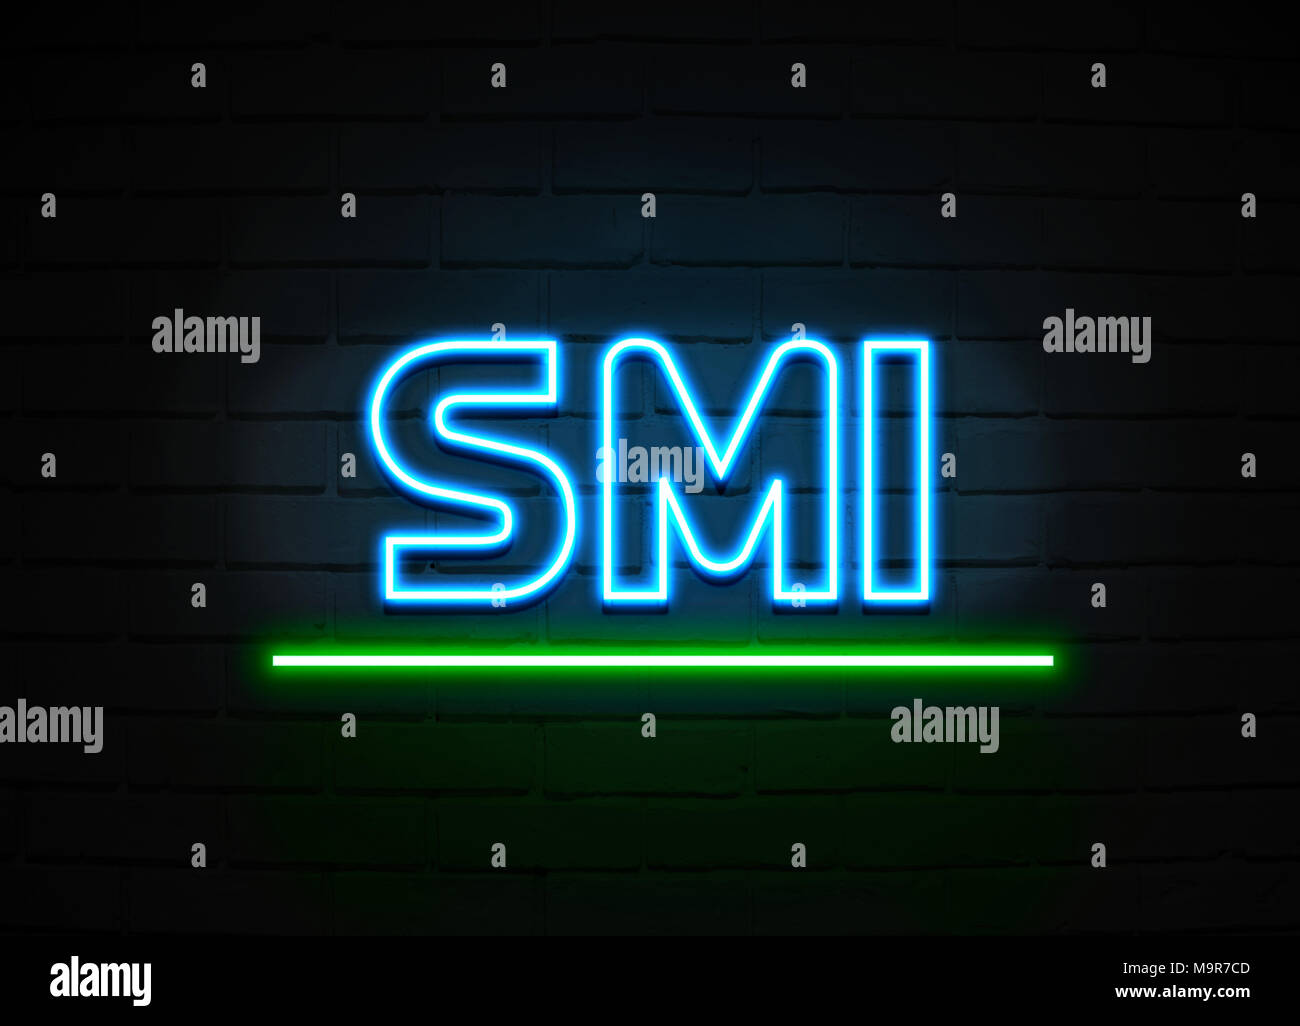 Smi neon sign - Glowing Neon Sign on brickwall wall - 3D rendered royalty free stock illustration. - Stock Image